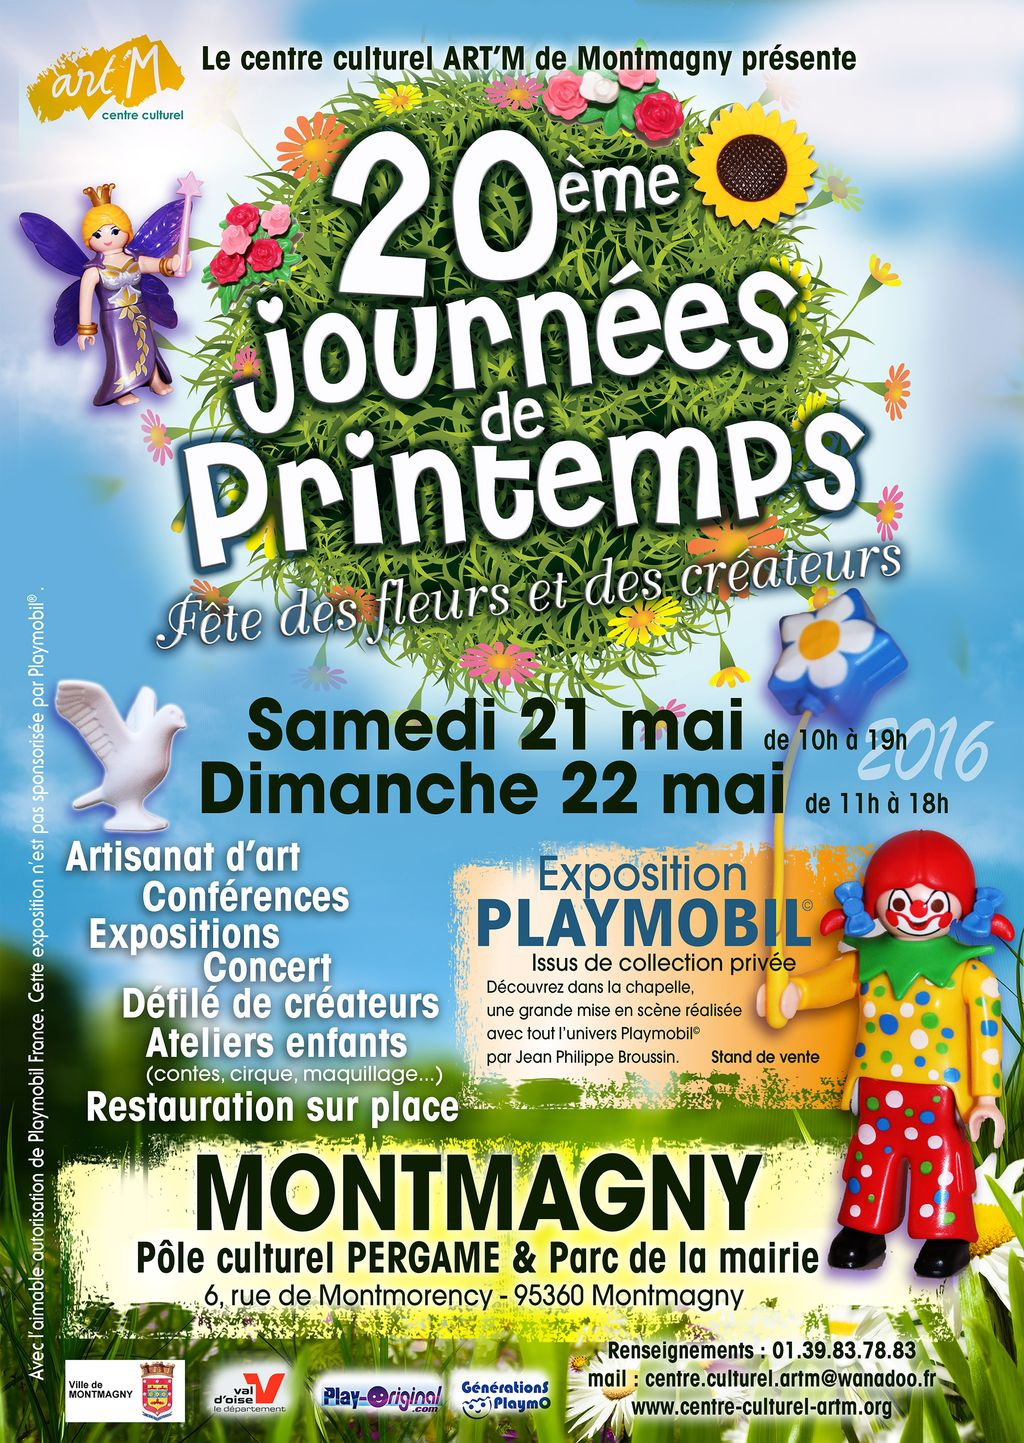 montmagny 20e journees de printemps 21 22 mai 2016